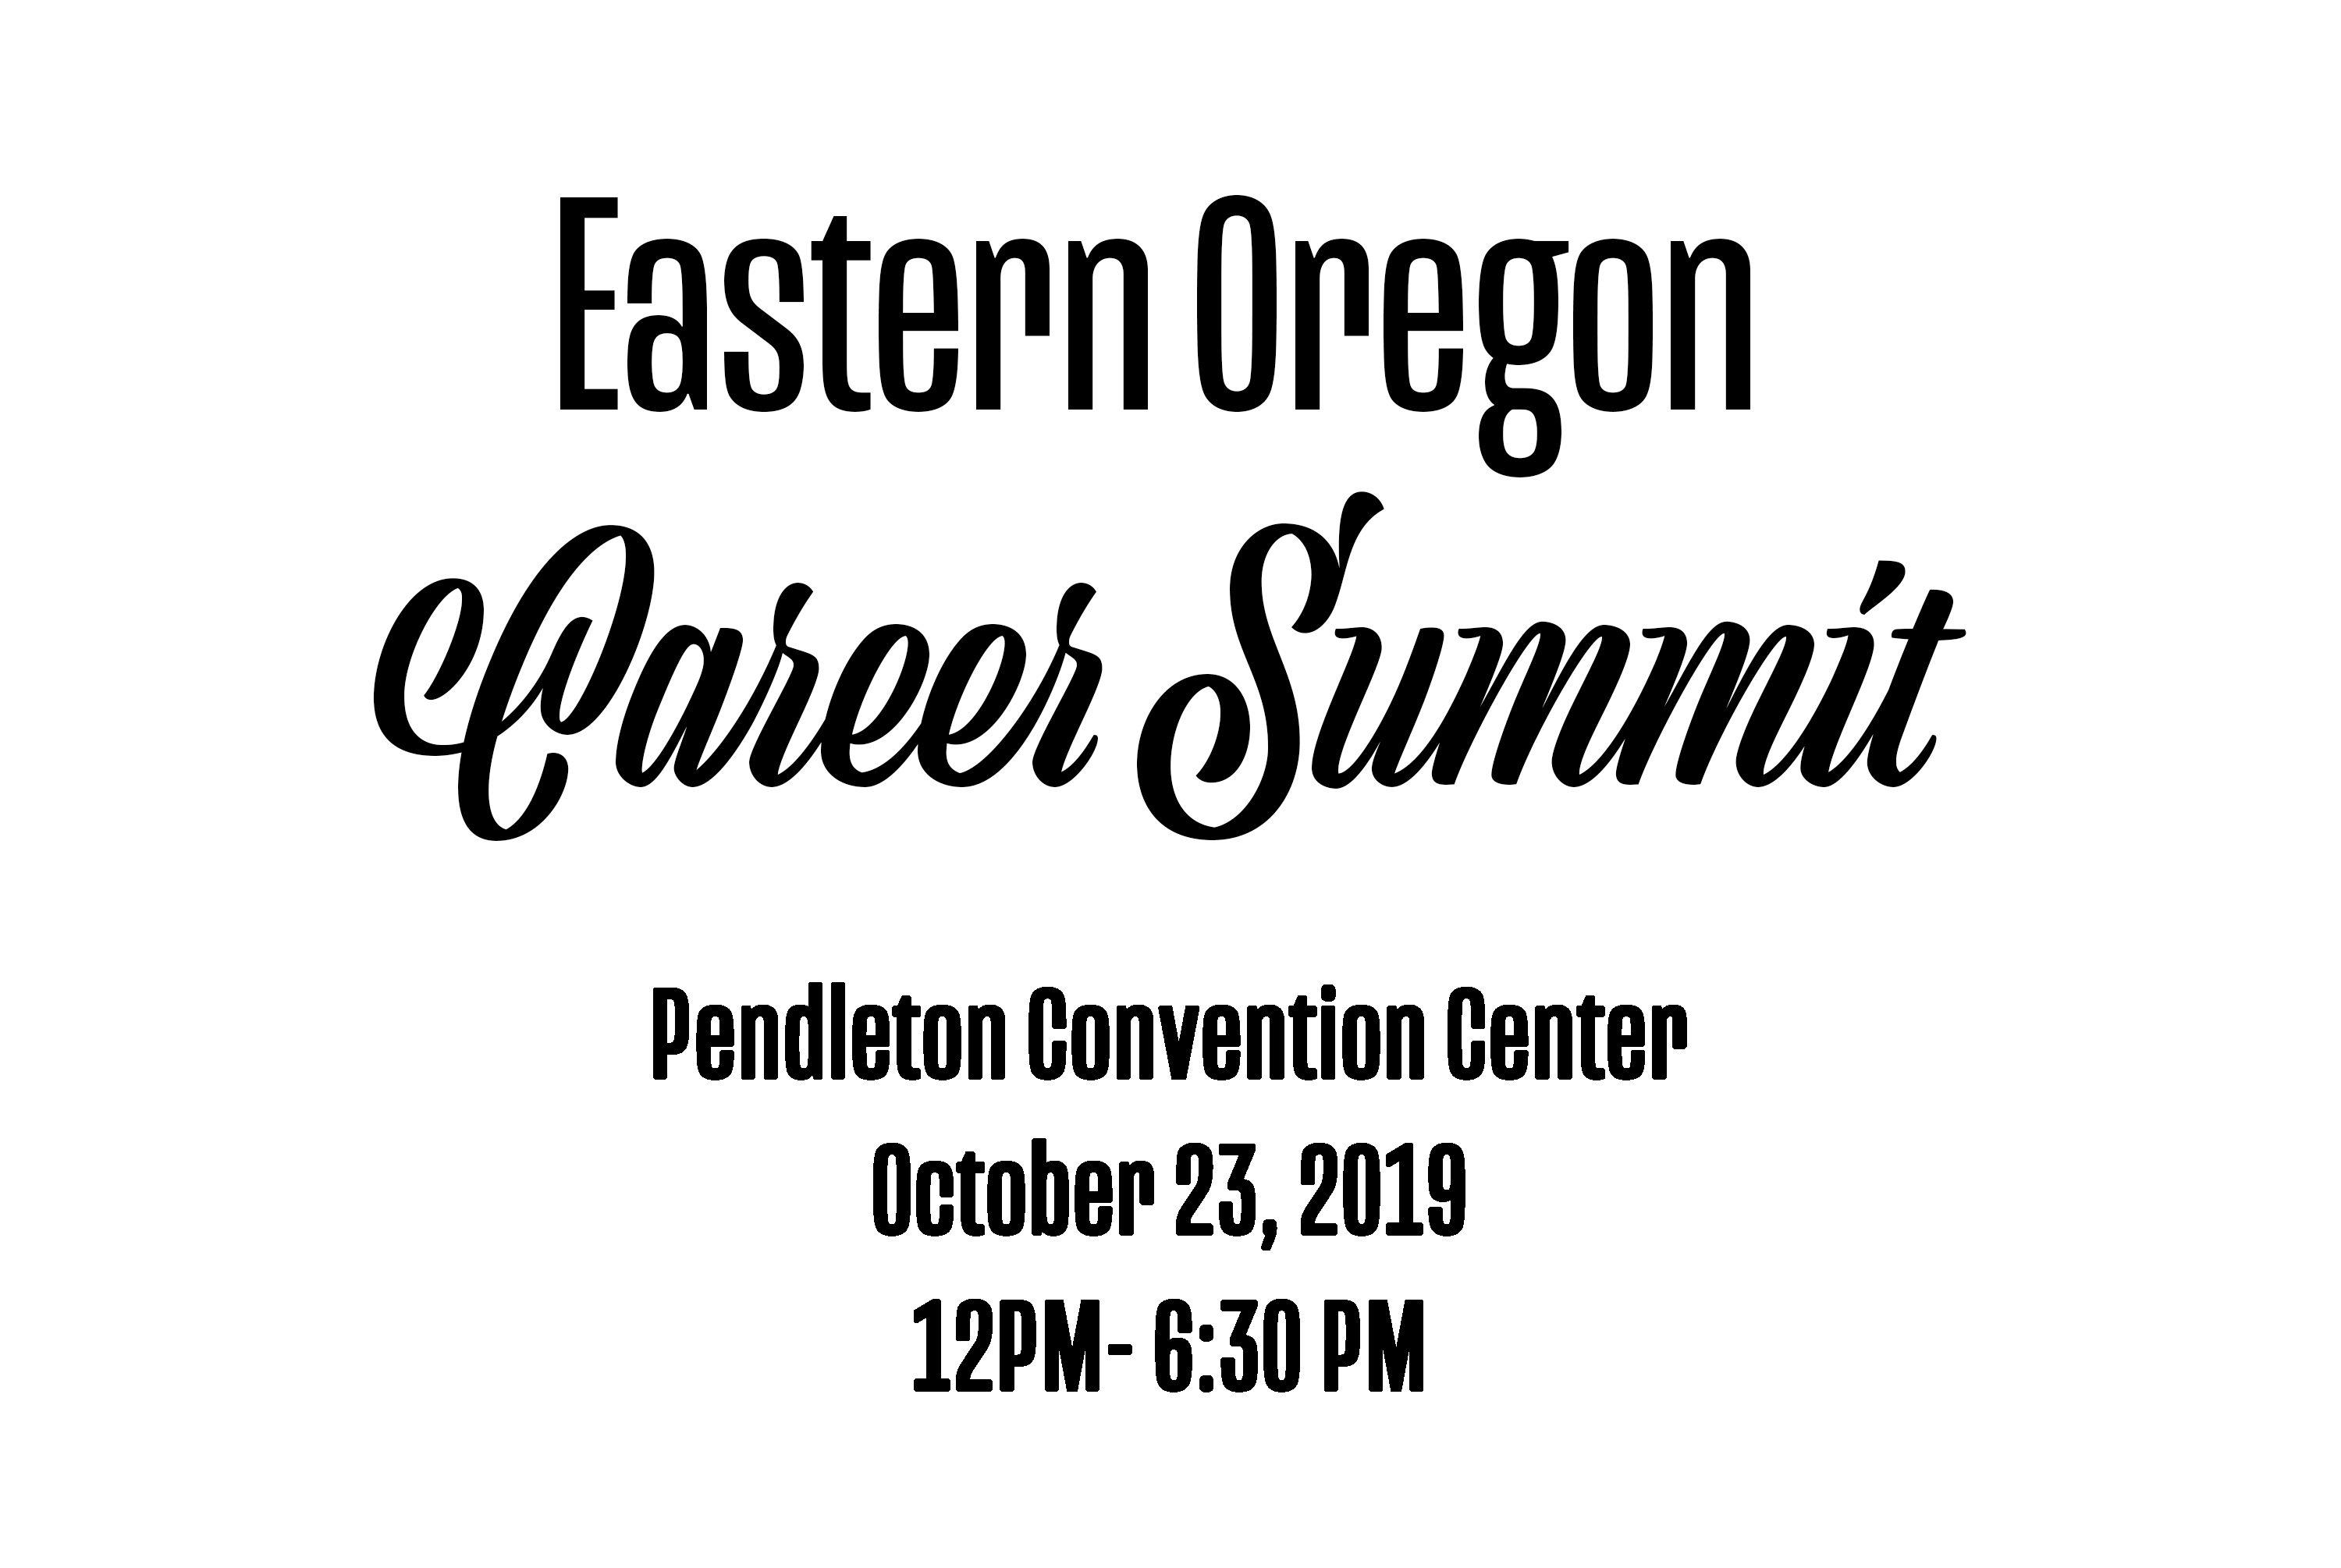 Eastern Oregon Career Summit